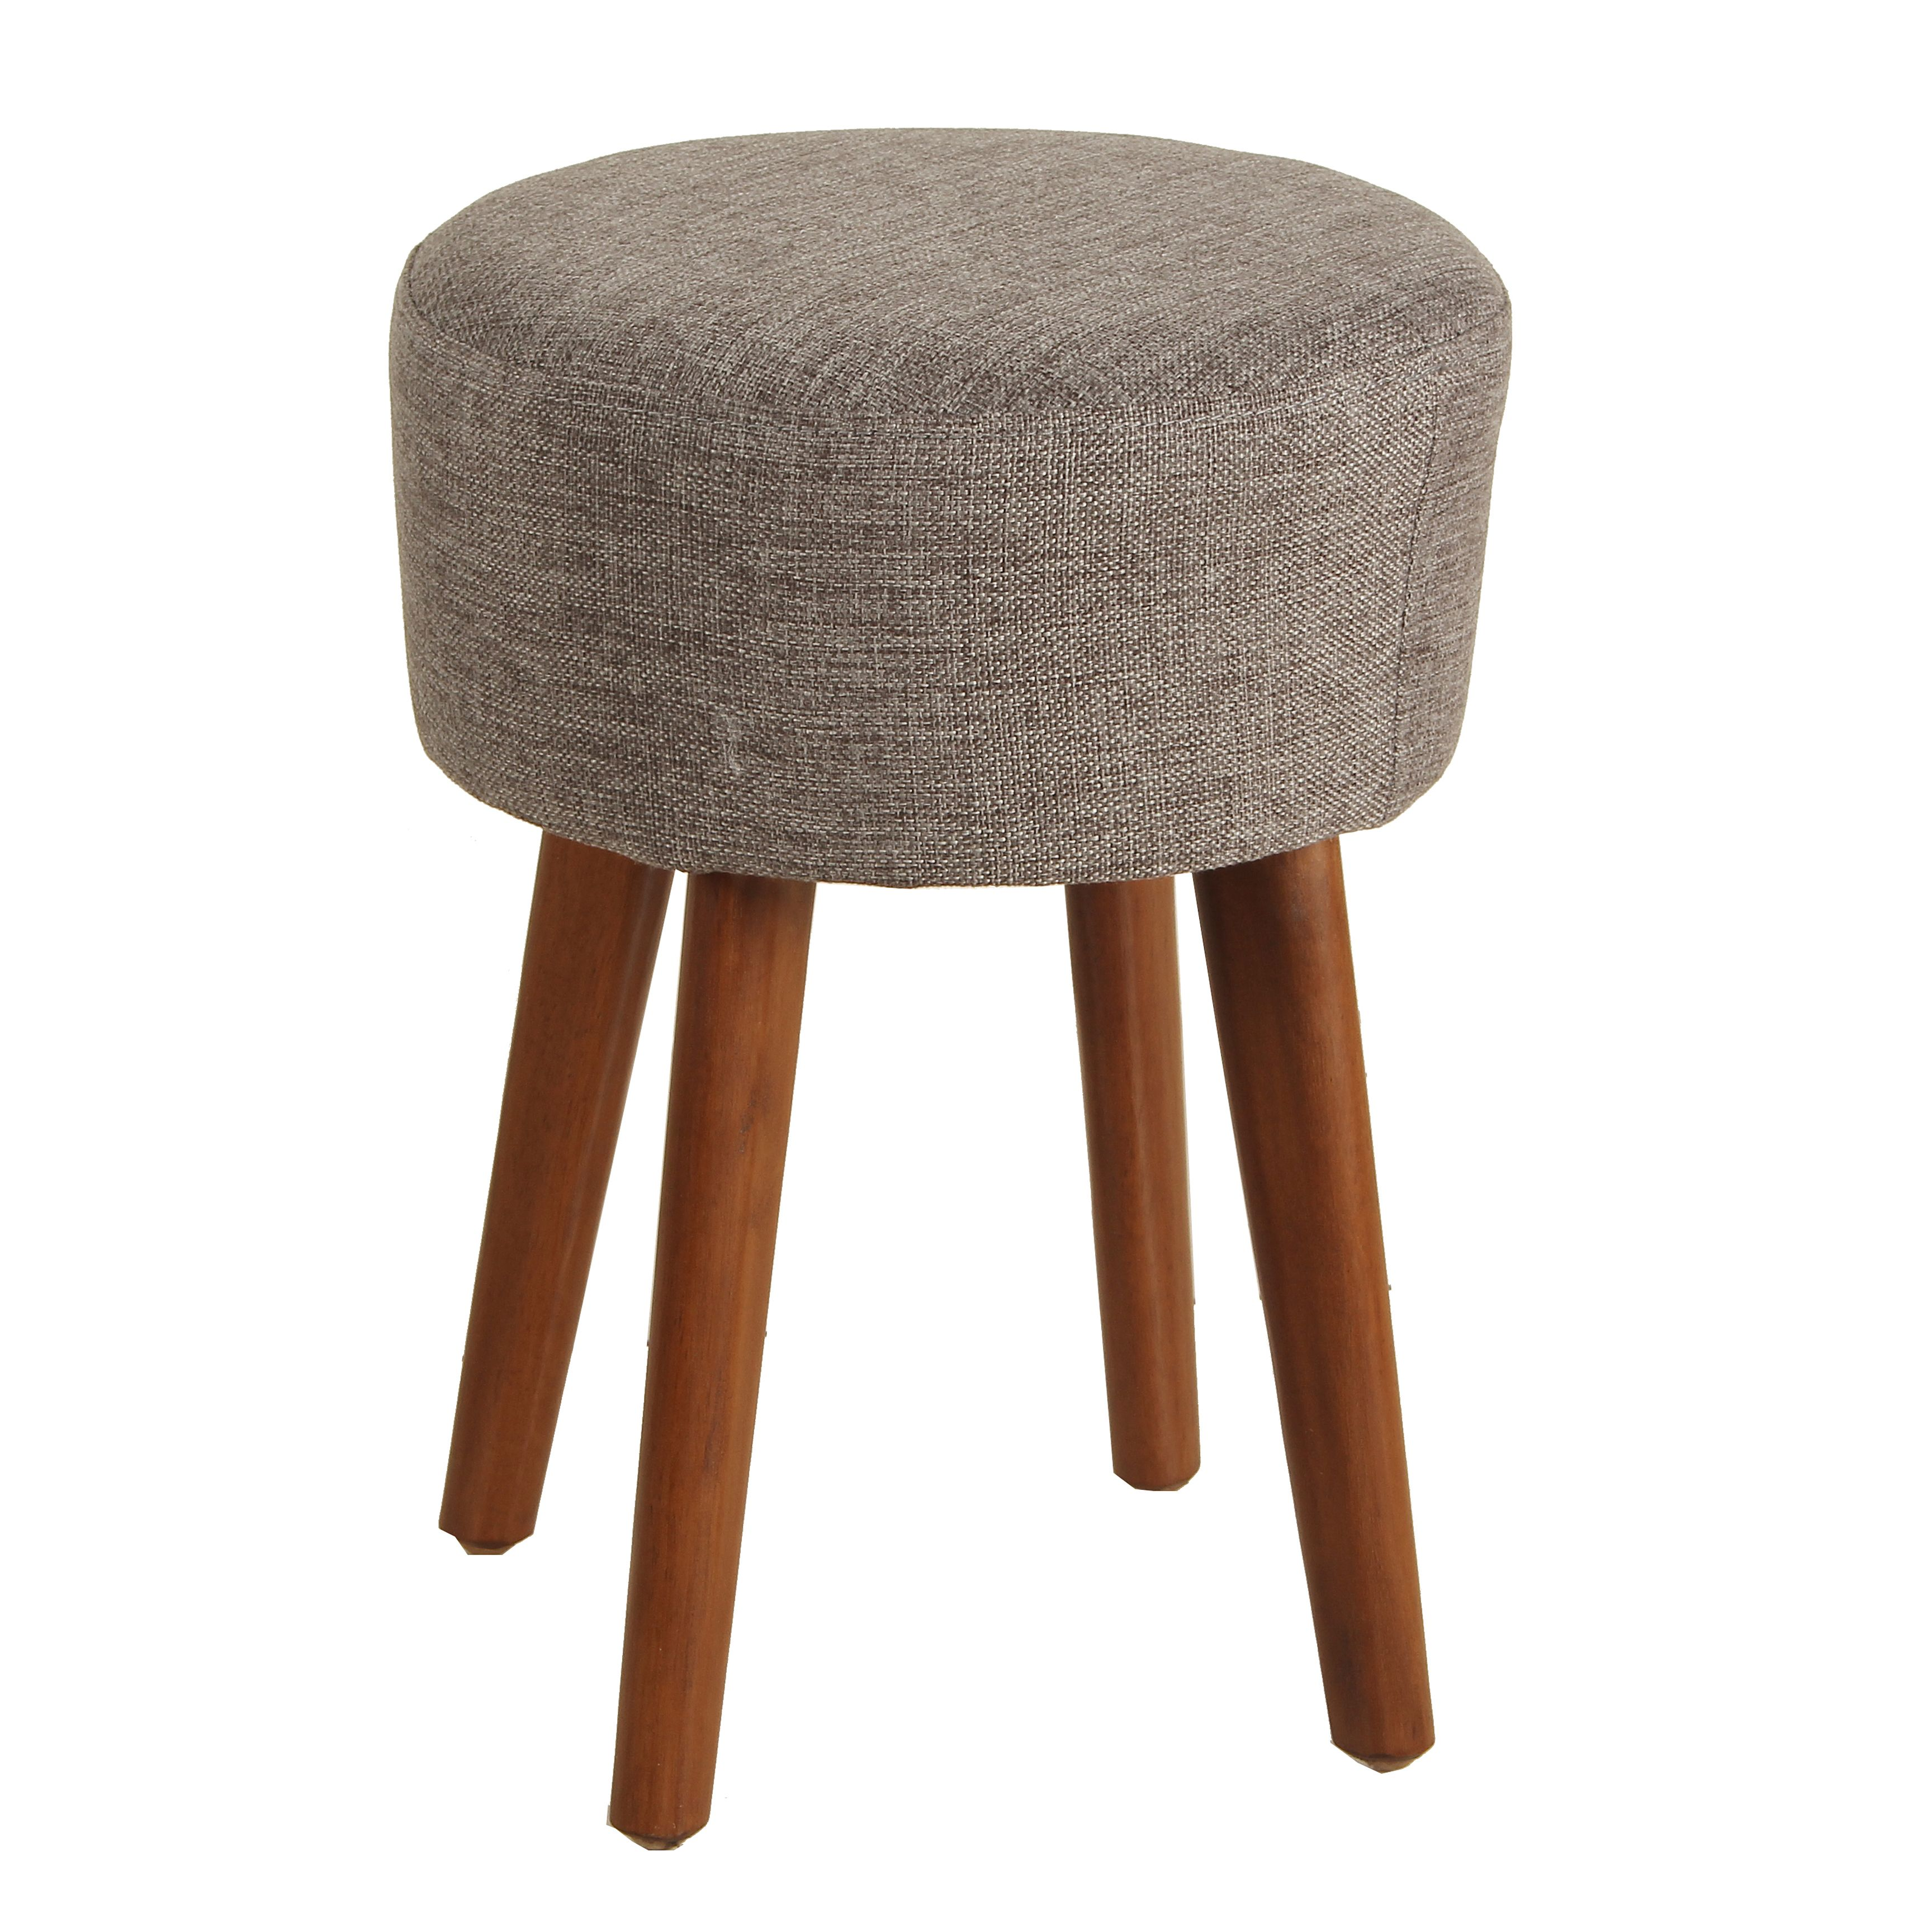 porthos home wallace upholstered stool products upholstered rh za pinterest com